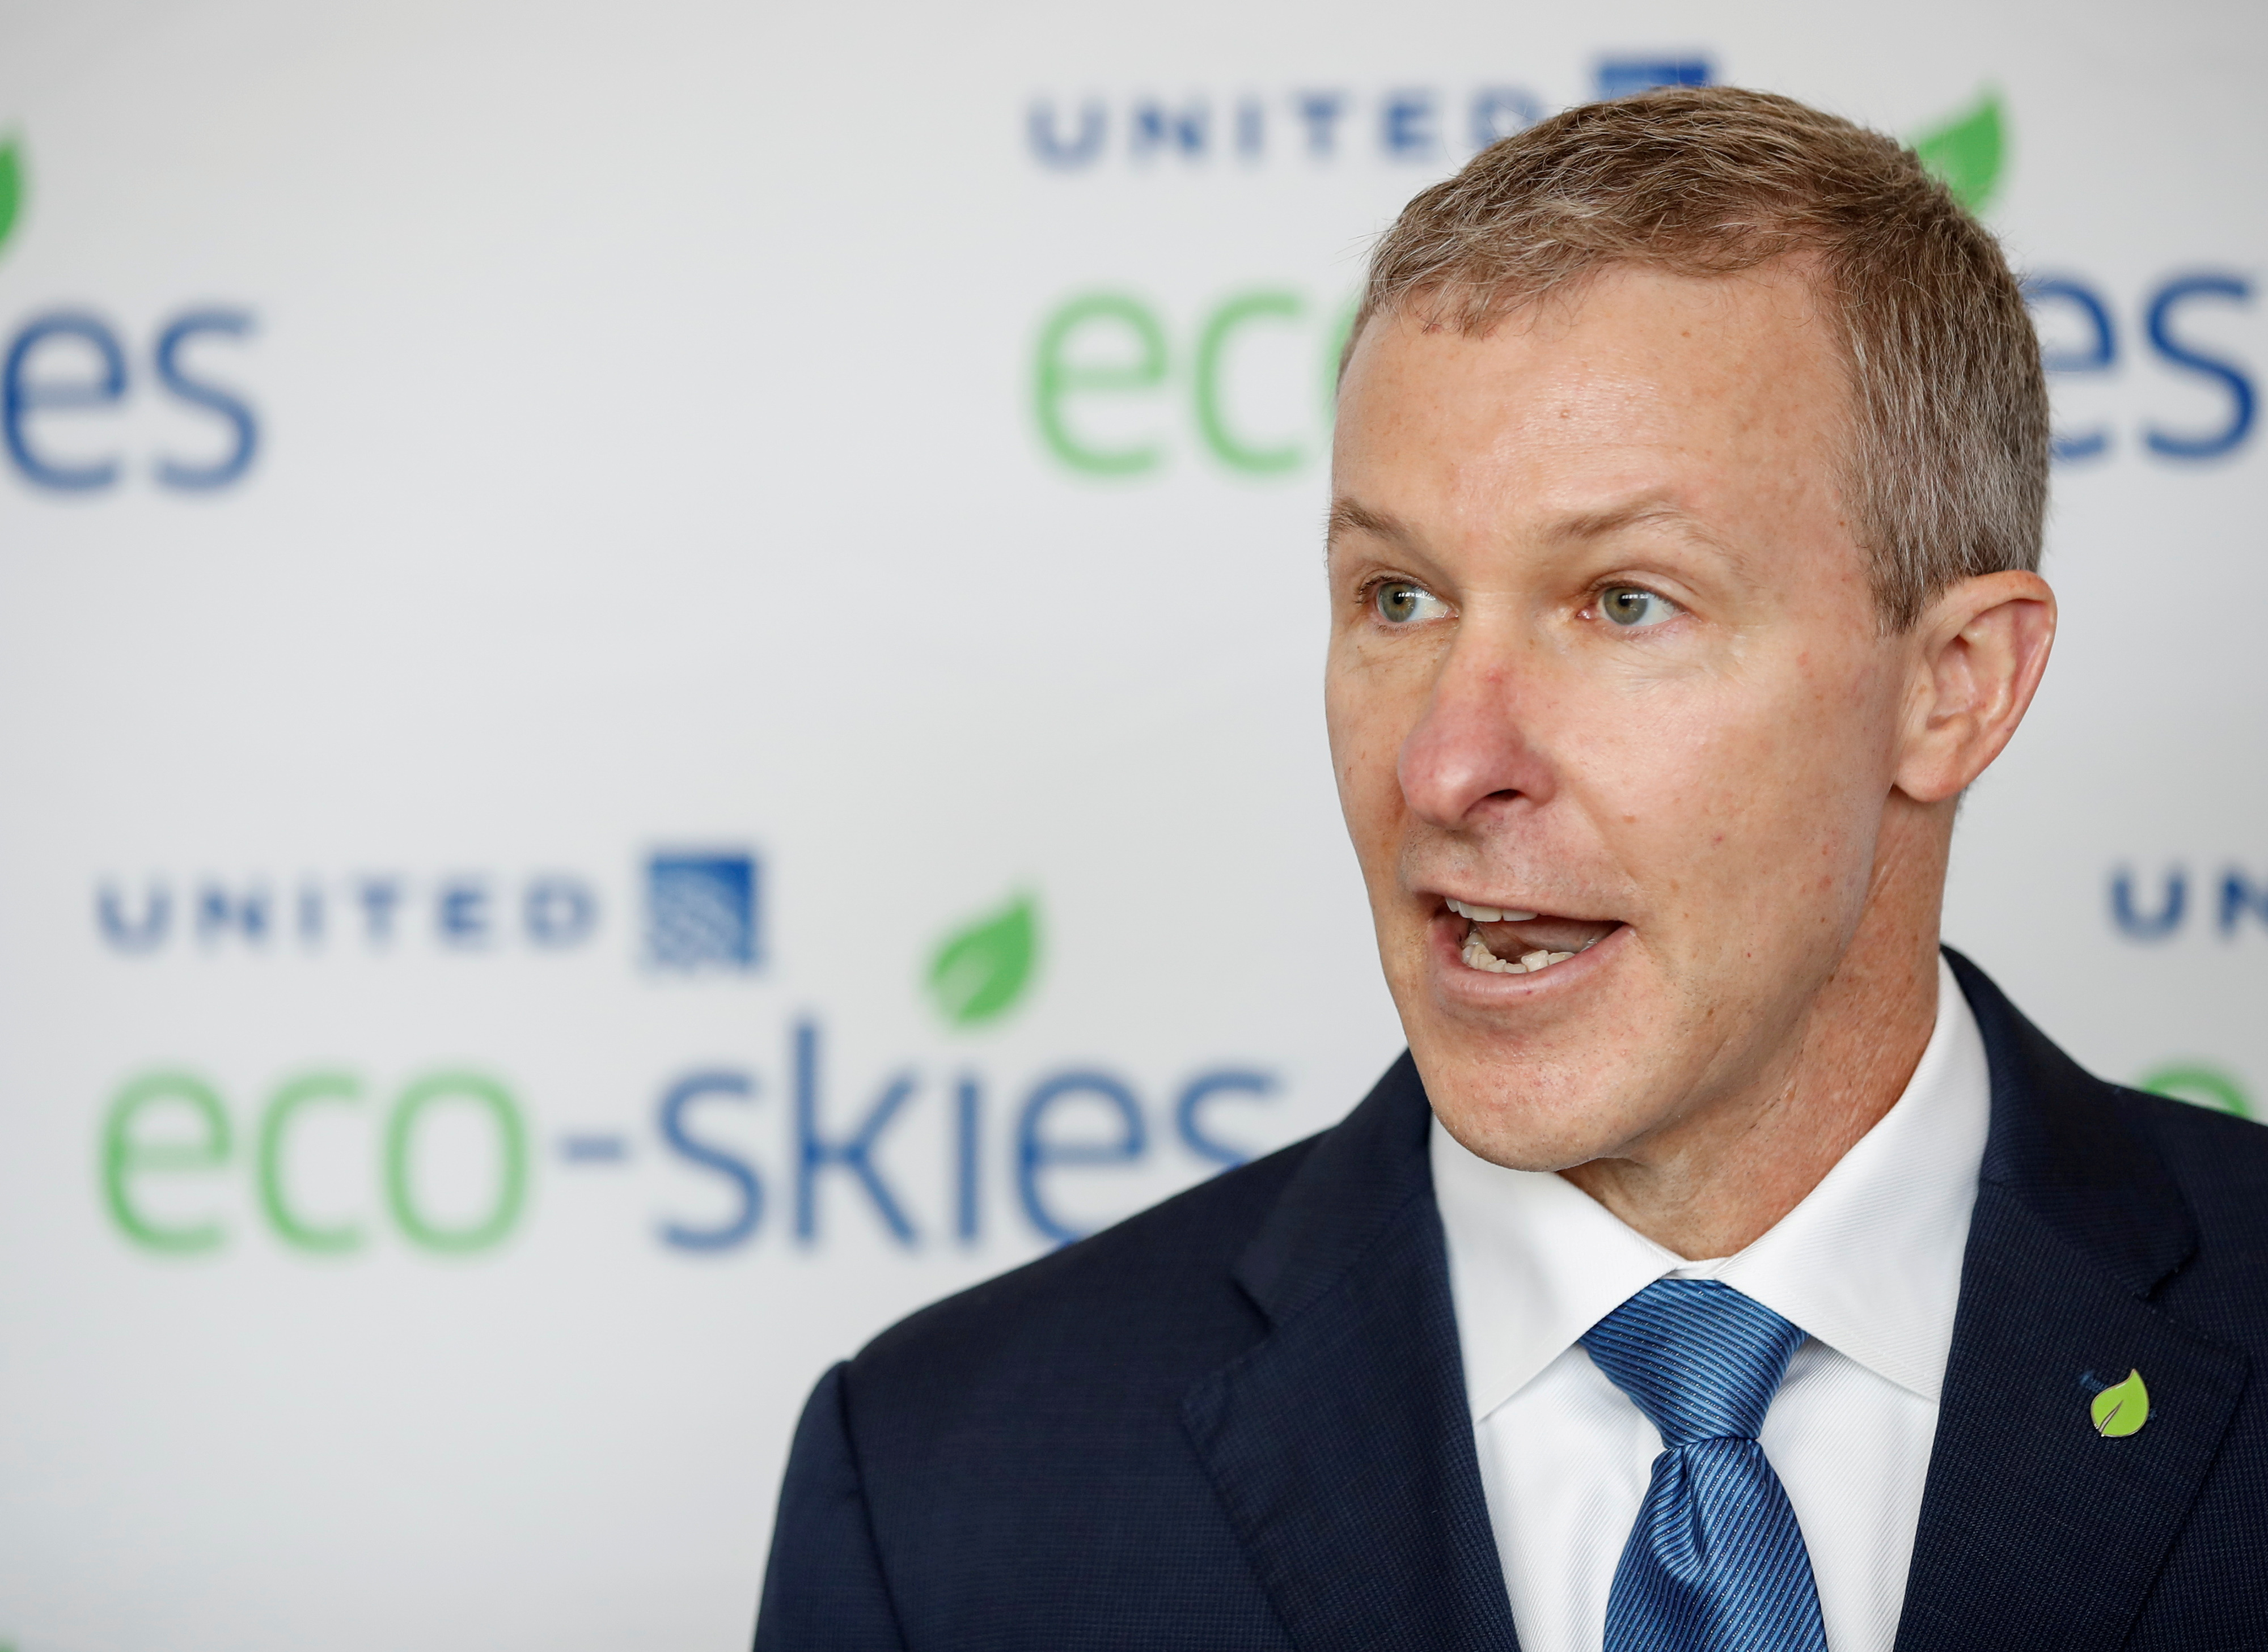 """United Airlines CEO Scott Kirby speaks before the departure of the """"Flight for the Planet"""", the most eco-friendly commercial flight in history of aviation, according to the airline, from O'Hare International Airport to Los Angeles, in Chicago, Illinois, U.S., June 5, 2019. REUTERS/Kamil Krzaczynski/File Photo"""